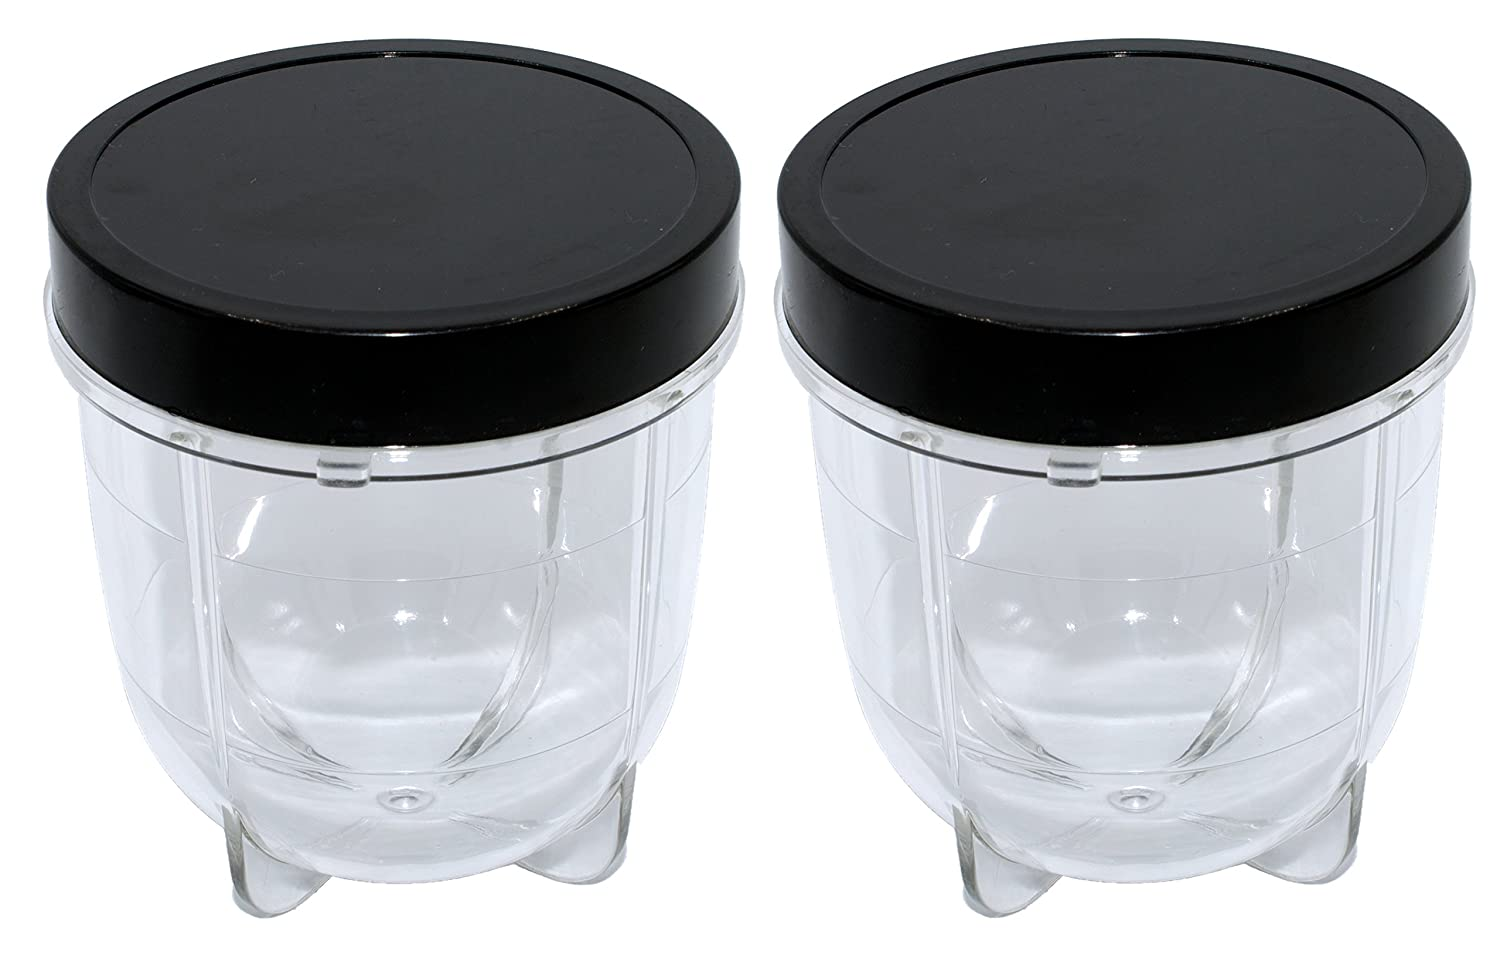 Blendin 2 Pack Short Cup with Black Jar Lid, Fits Original Magic Bullet Blender Juicer MB1001 250W